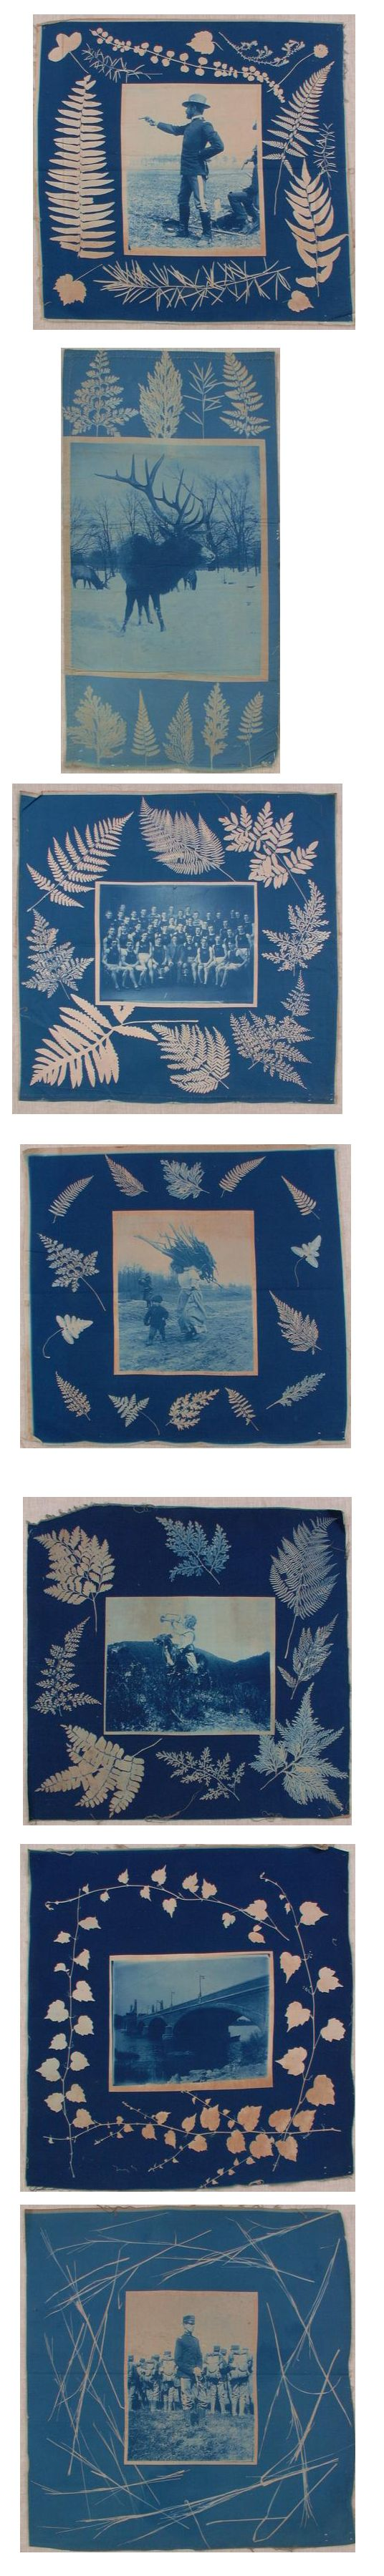 Cyanotypes printed on cotton textile fragments, ca.1900, by George E. Stonebridge. Gift of George E. Stonebridge, New-York Historical Society, 1942.83.